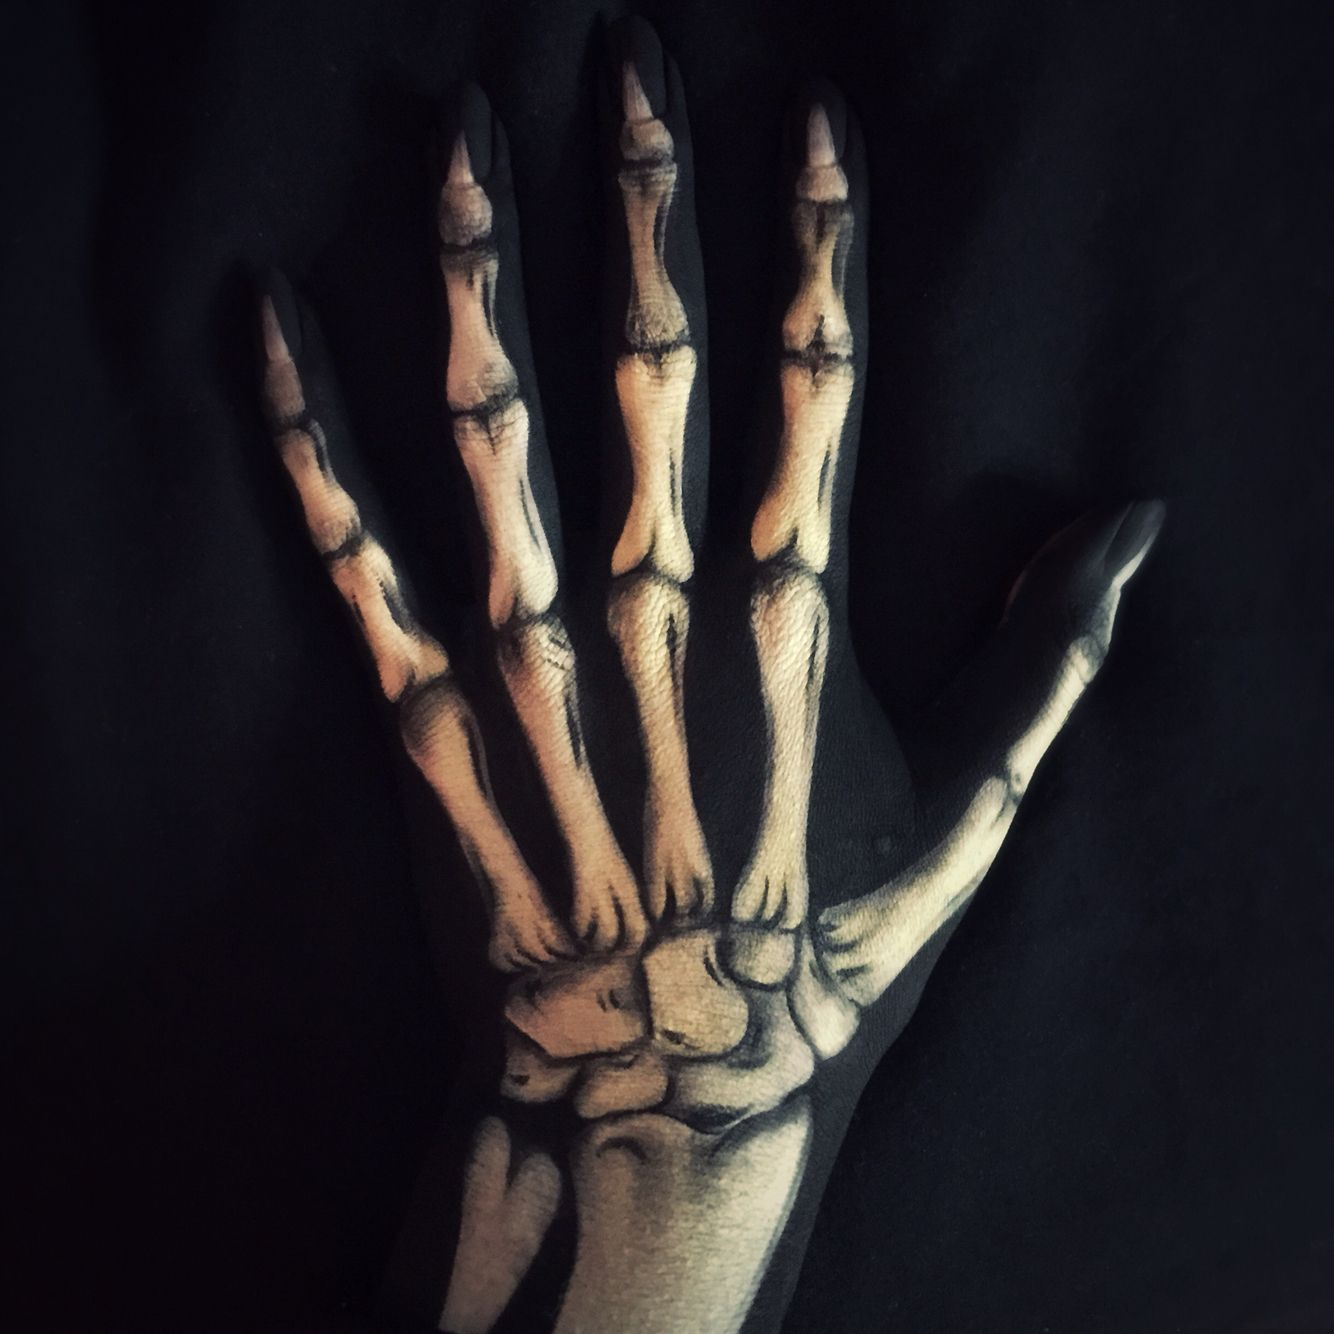 Skeleton hand | tattoo ideas | Pinterest | Skeletons, Tattoo and Tatting